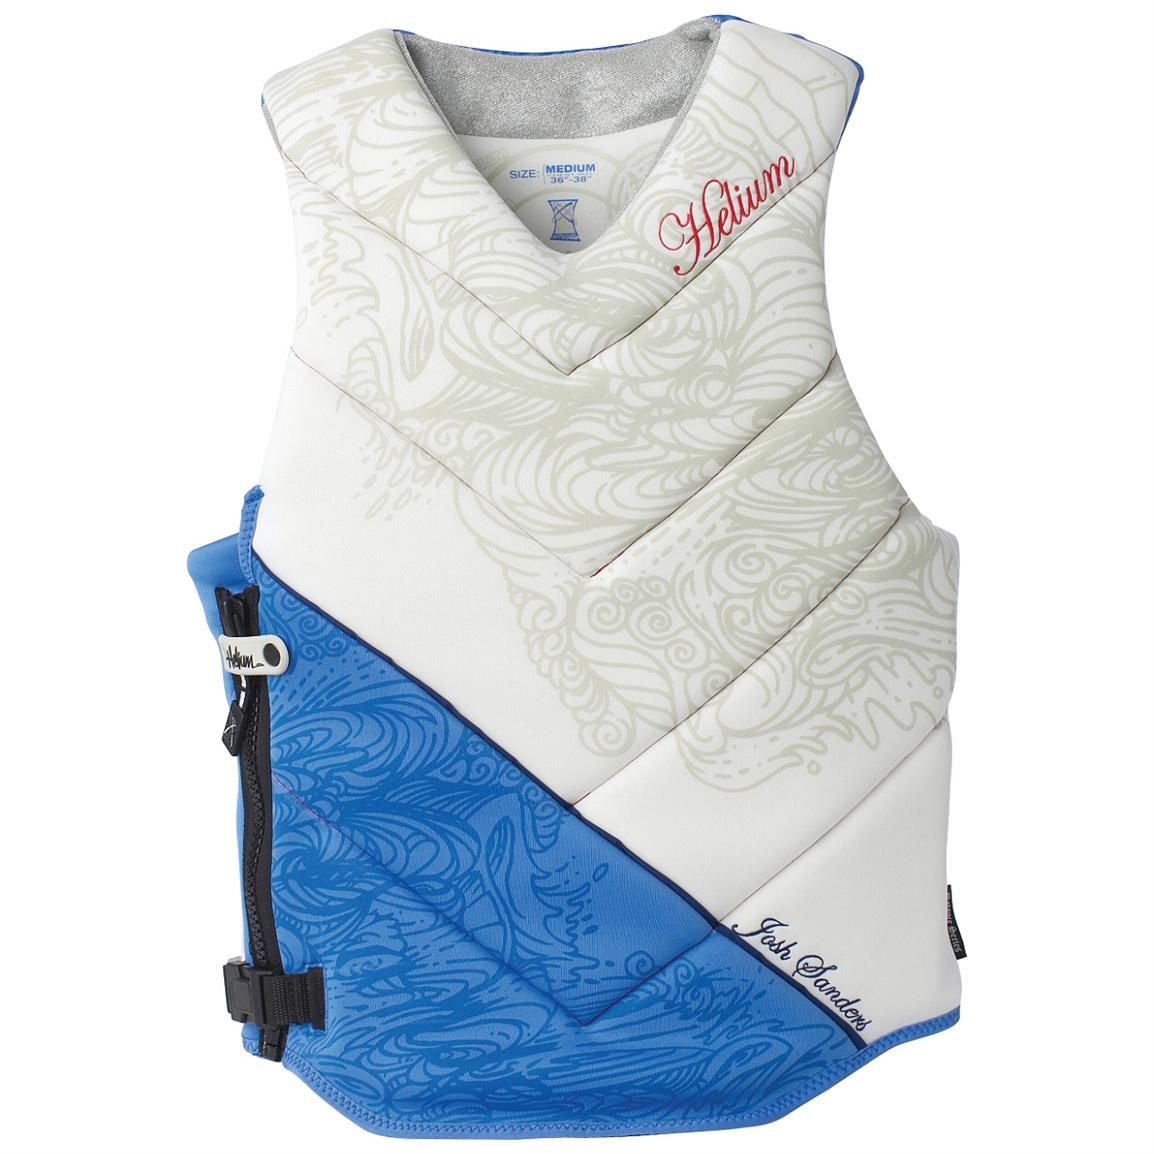 auto manual inflatable life vest